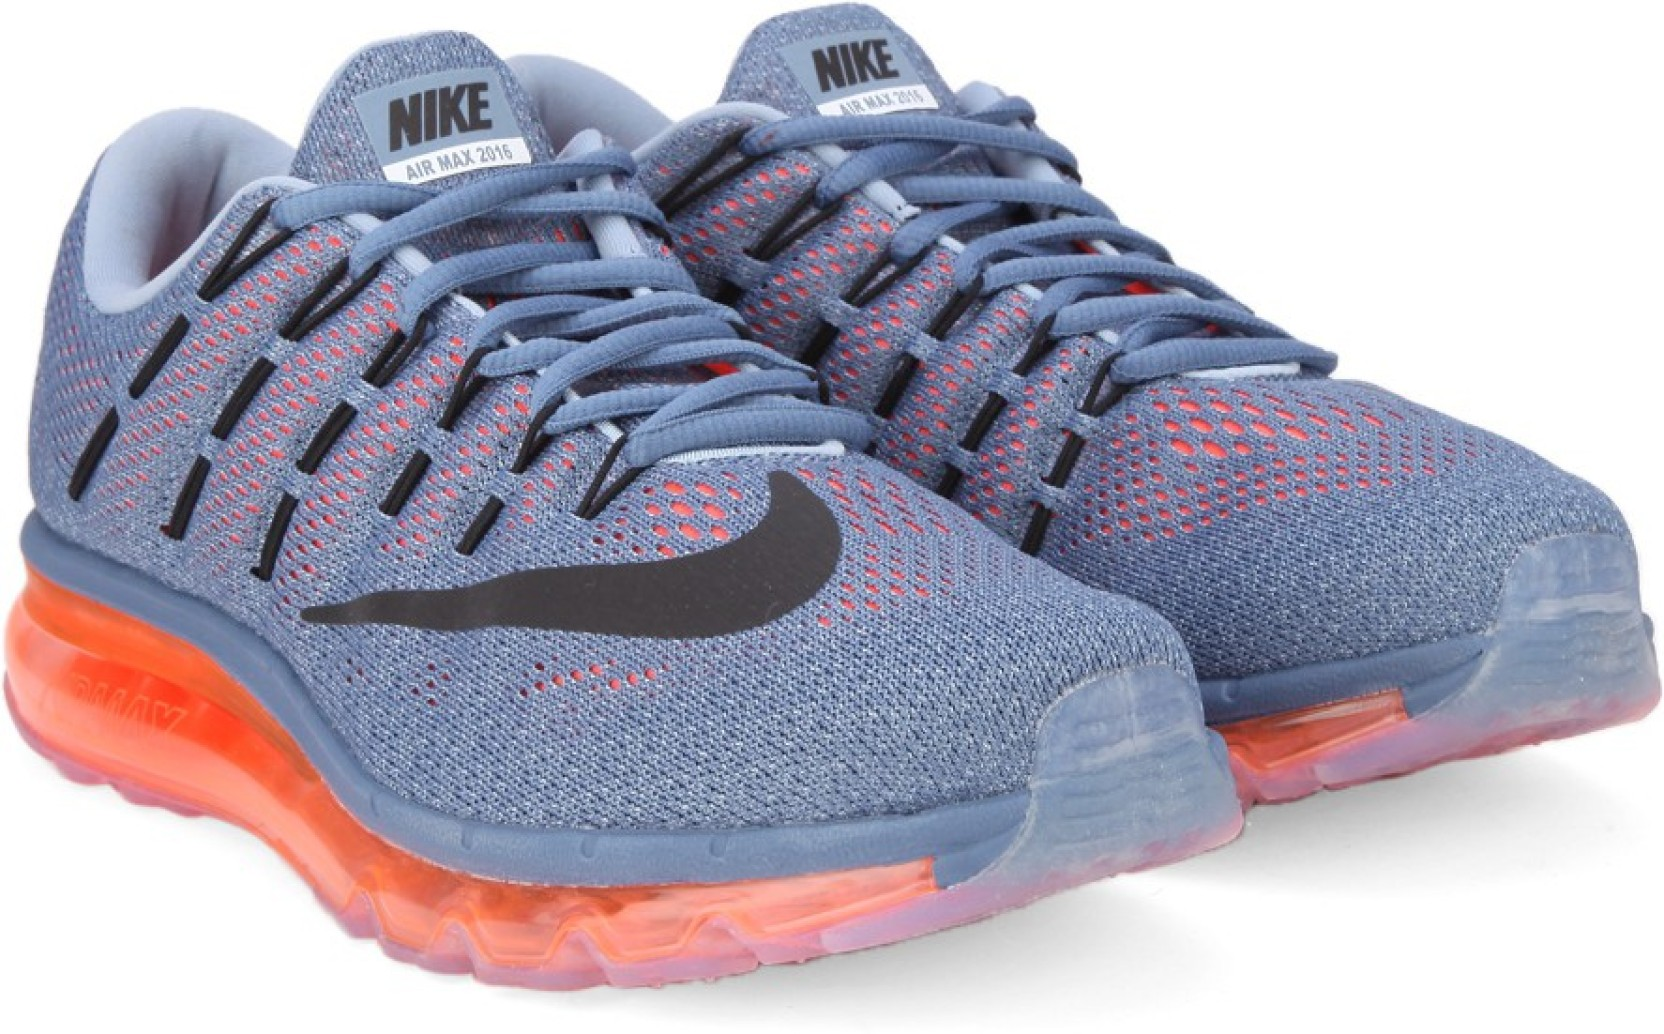 lowest price 657c6 7699c Nike AIR MAX 2016 Running Shoes For Men (Blue, Black)